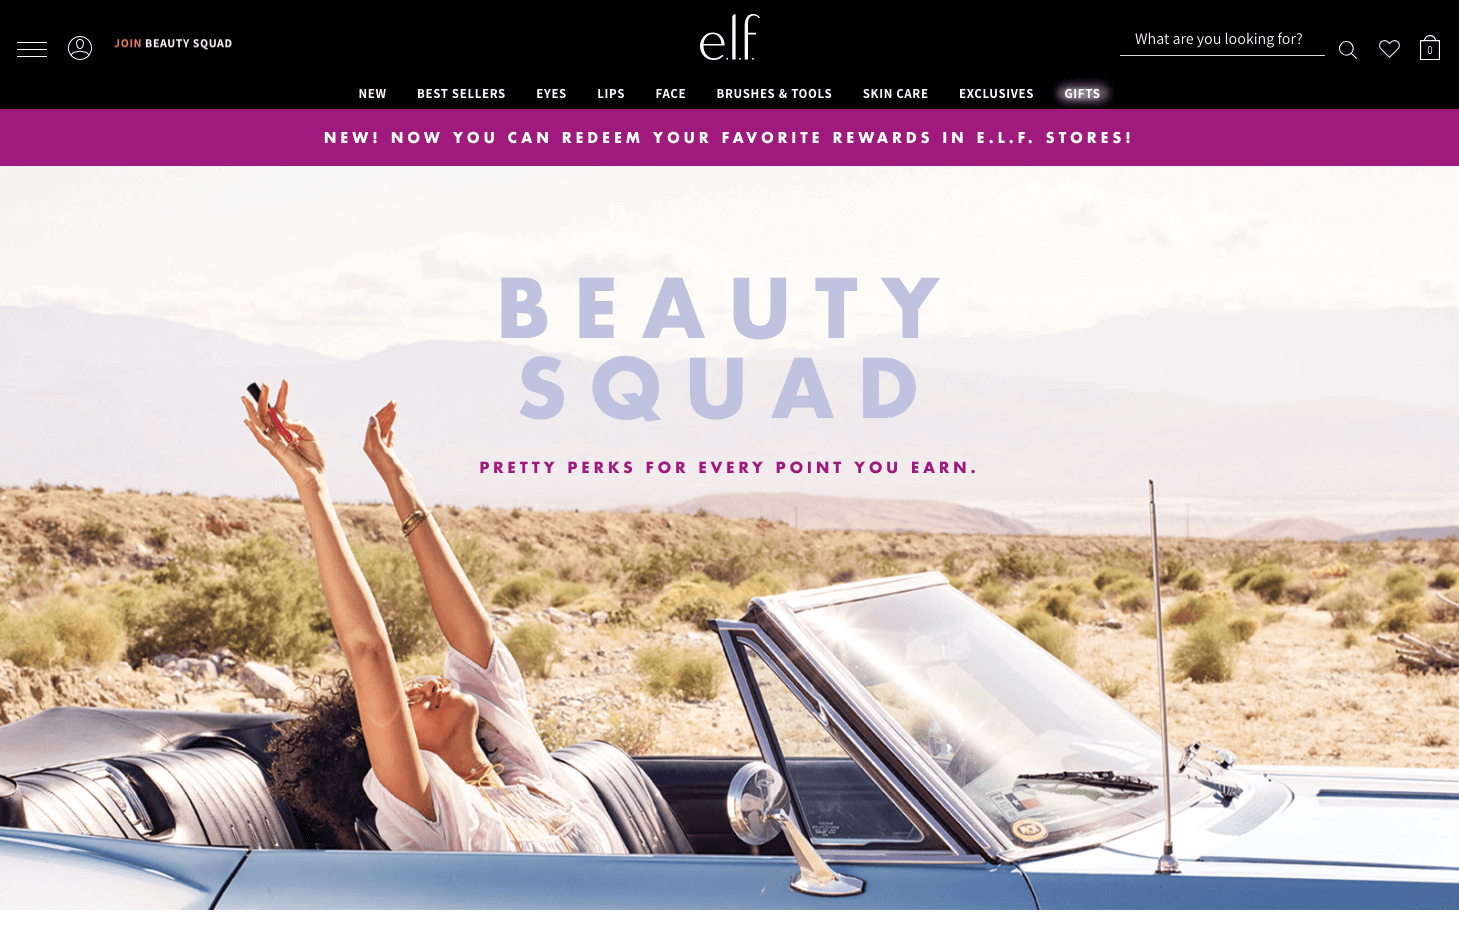 e.l.f. Beauty Squad explainer page